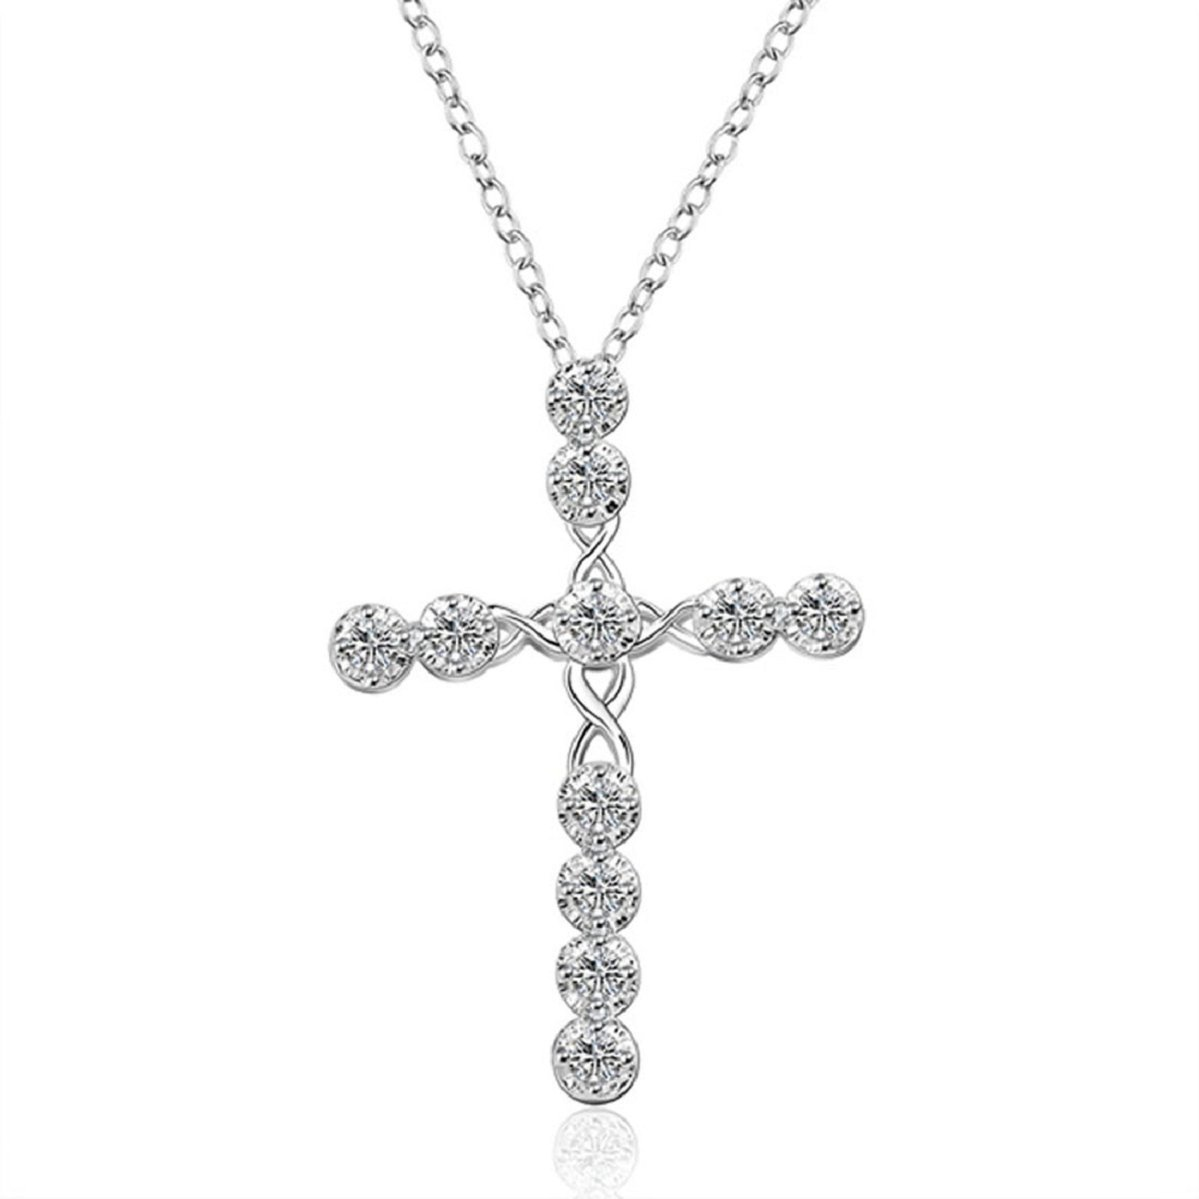 Yunchuang Luxury Silver Statement Chain Crystal Rhinestone Cross Necklace Women